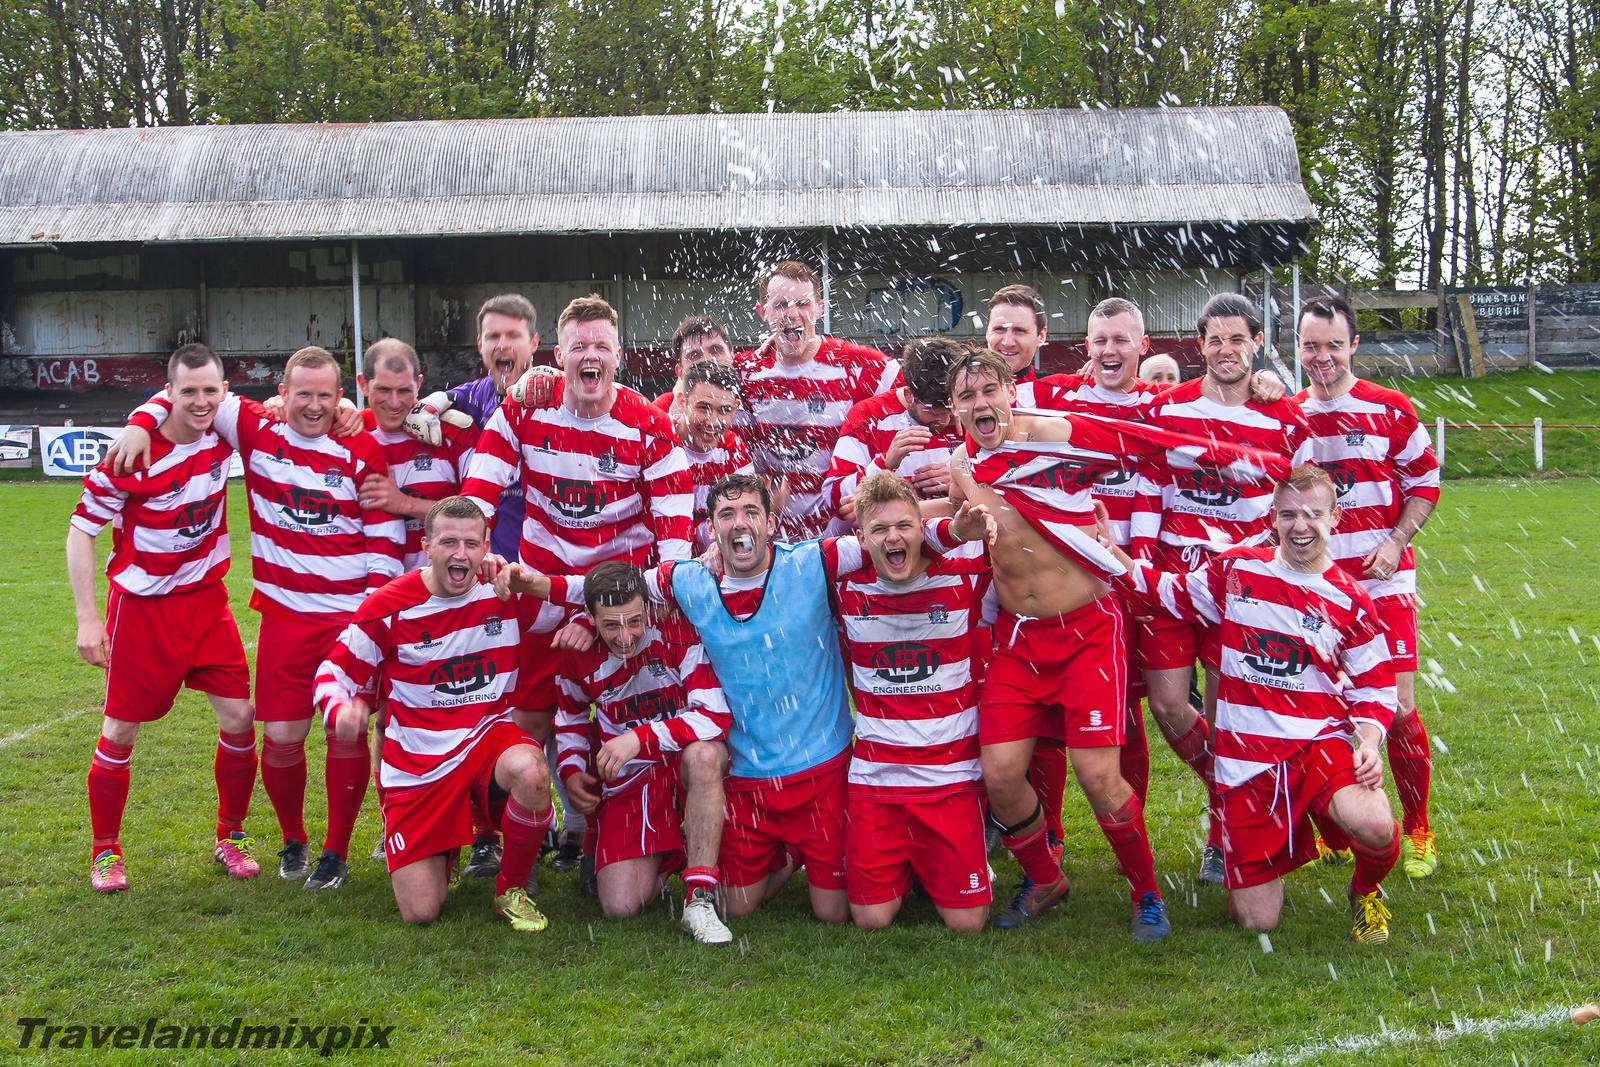 Johnstone Burgh 2 Royal Abert 0<br> Stagecoach West of Scotland League<br> Central District Second Division<br> Keanie Park<br> 09/05/2015<br> <i>Job done! Celebrations can commence!</i>